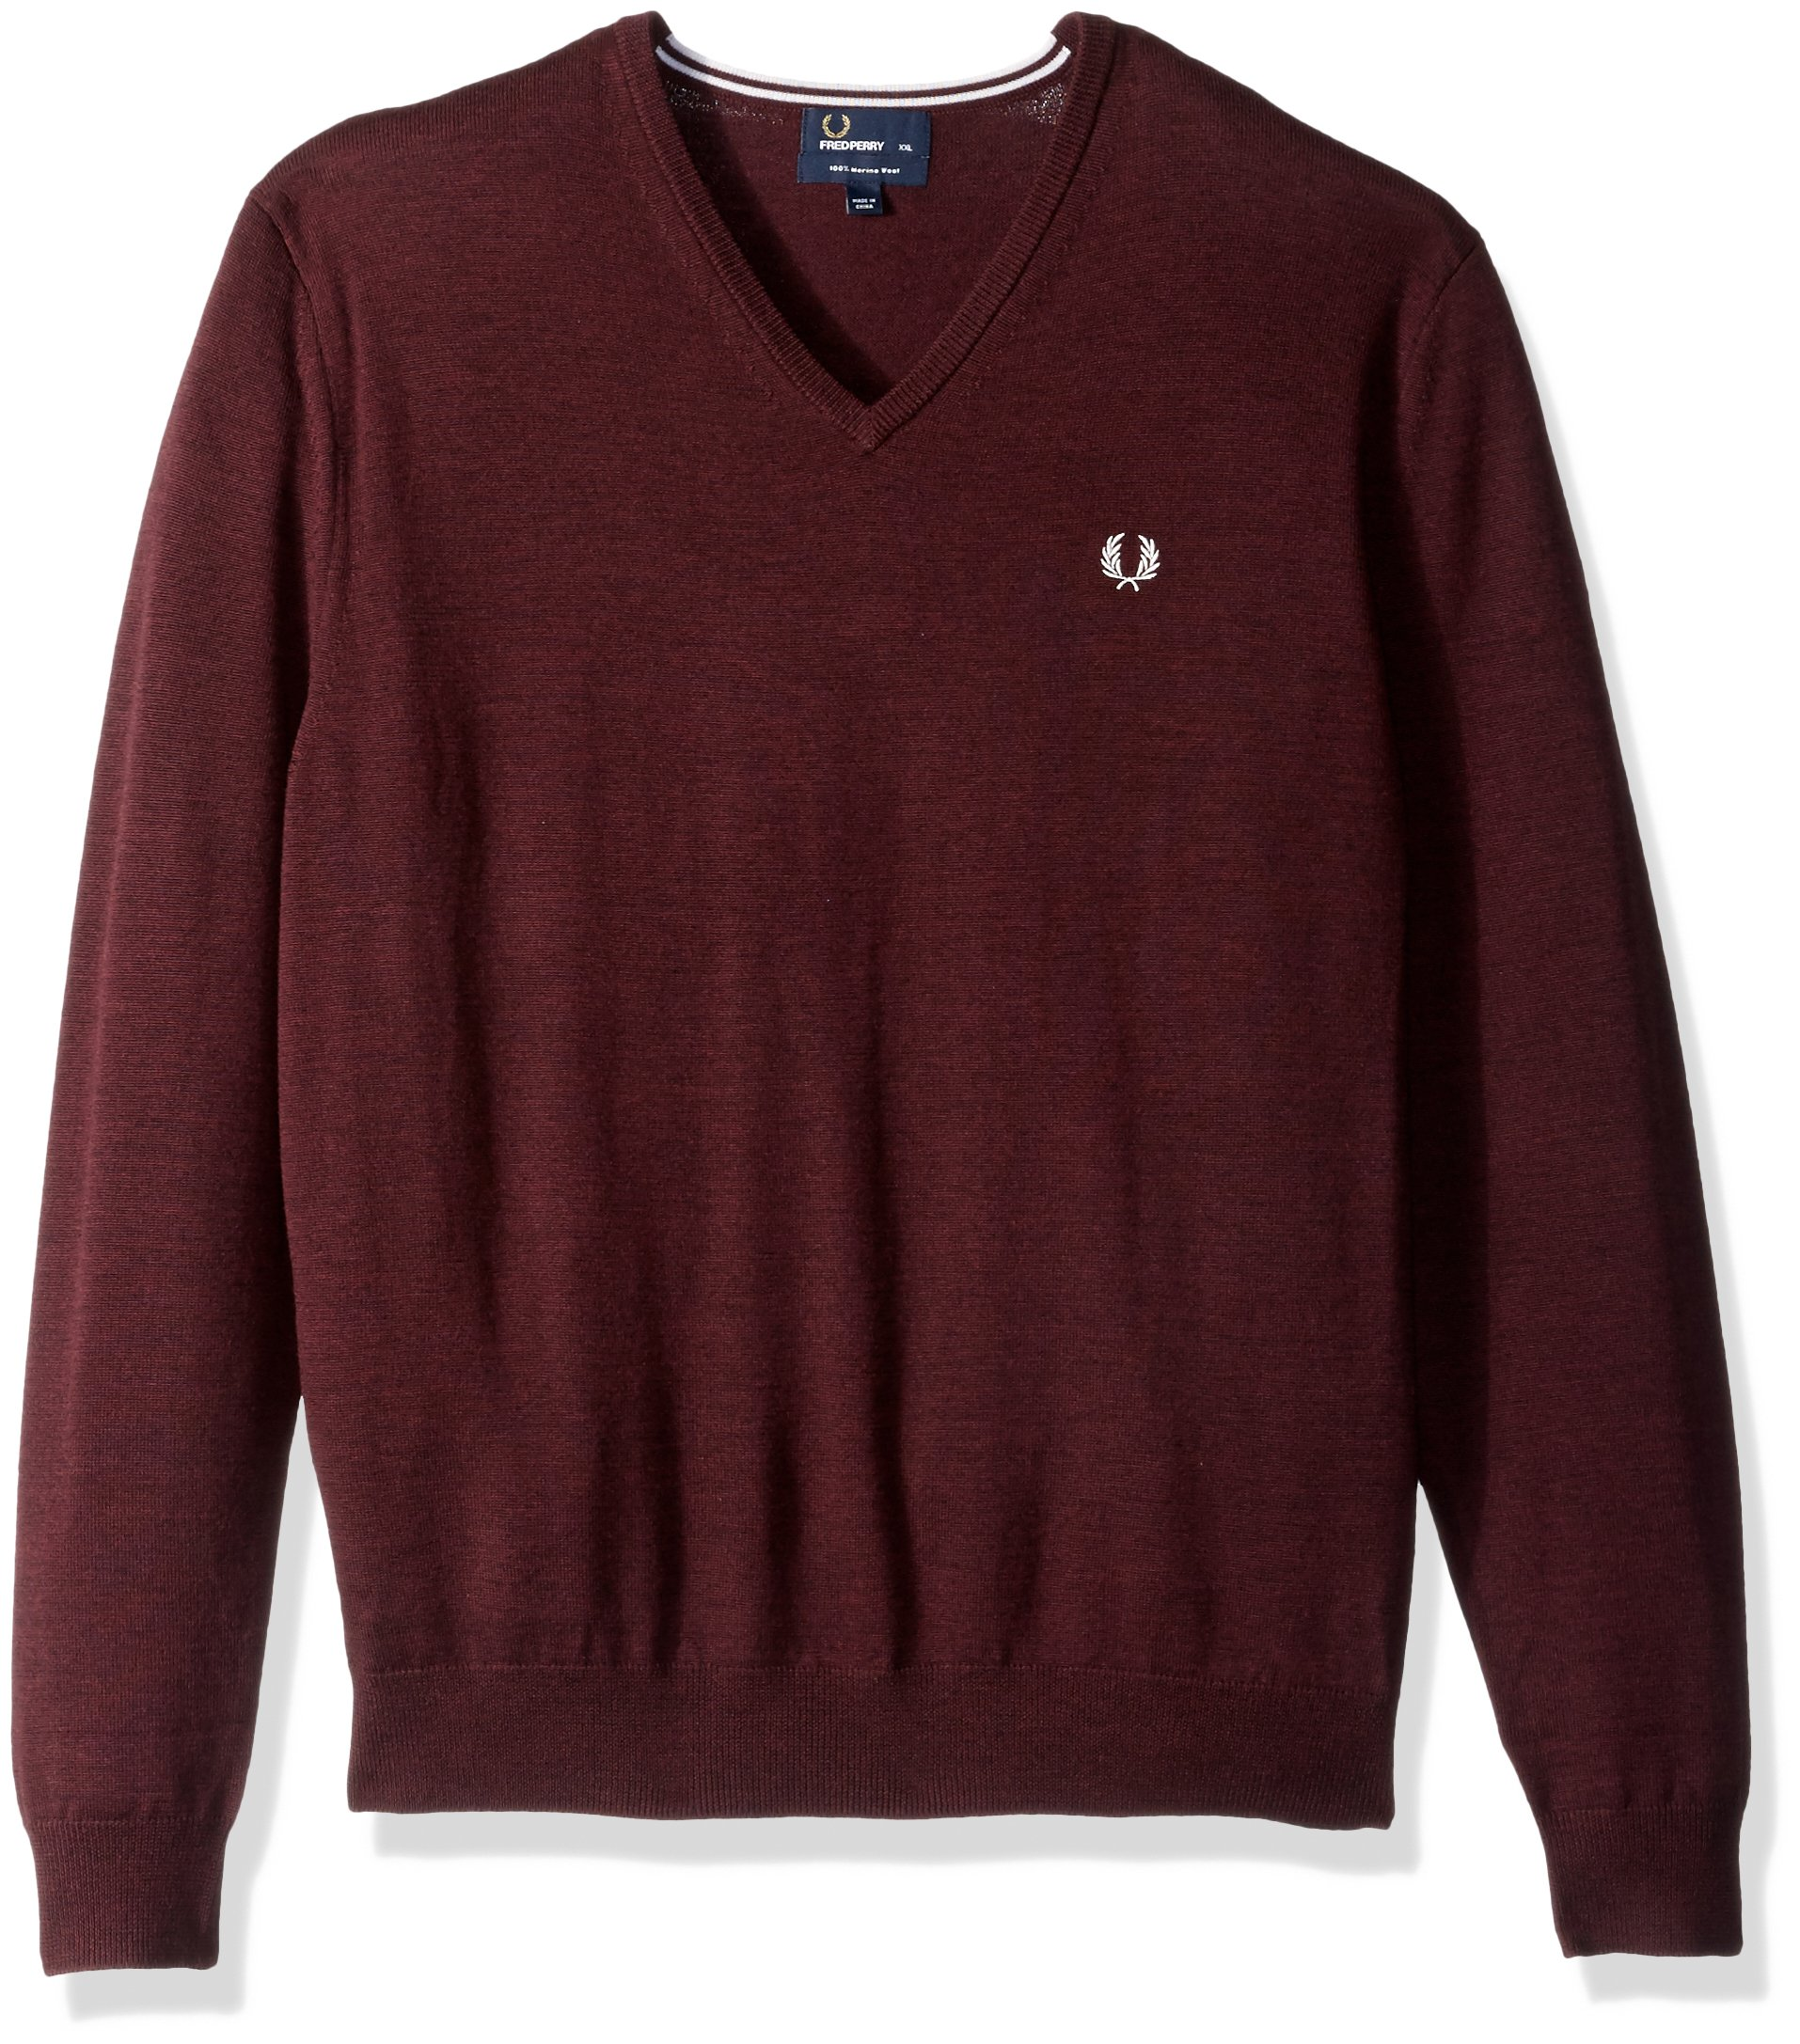 Fred Perry Men's Classic Tipped V Neck Sweater, Mahogany Marl, XX-Large